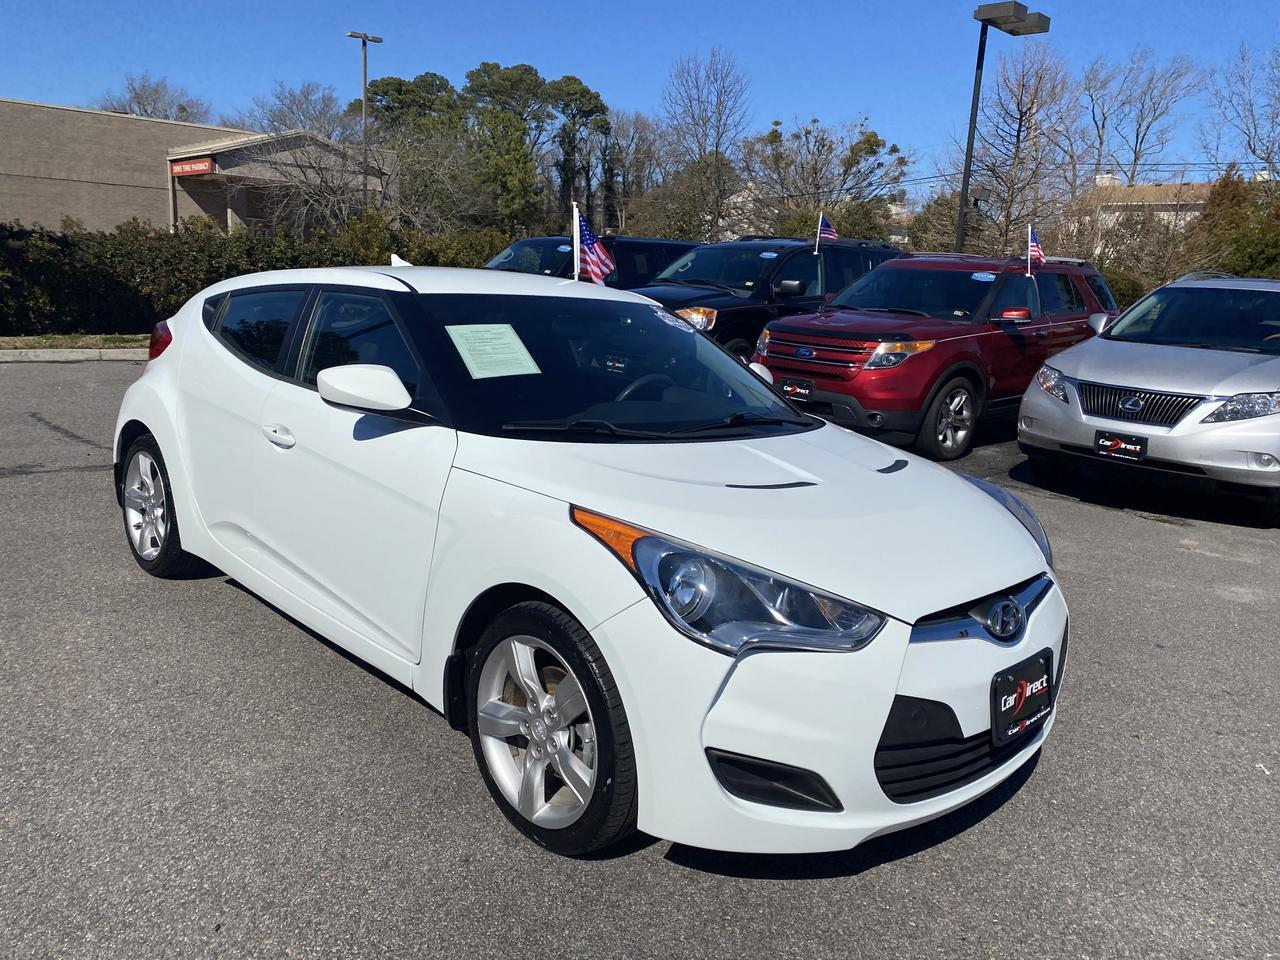 2013 HYUNDAI VELOSTER 3 DOOR HATCHBACK, ONE OWNER, BLUETOOTH WIRELESS, VERY CLEAN, WELL MAINTAINED, ONLY 34K MILES!